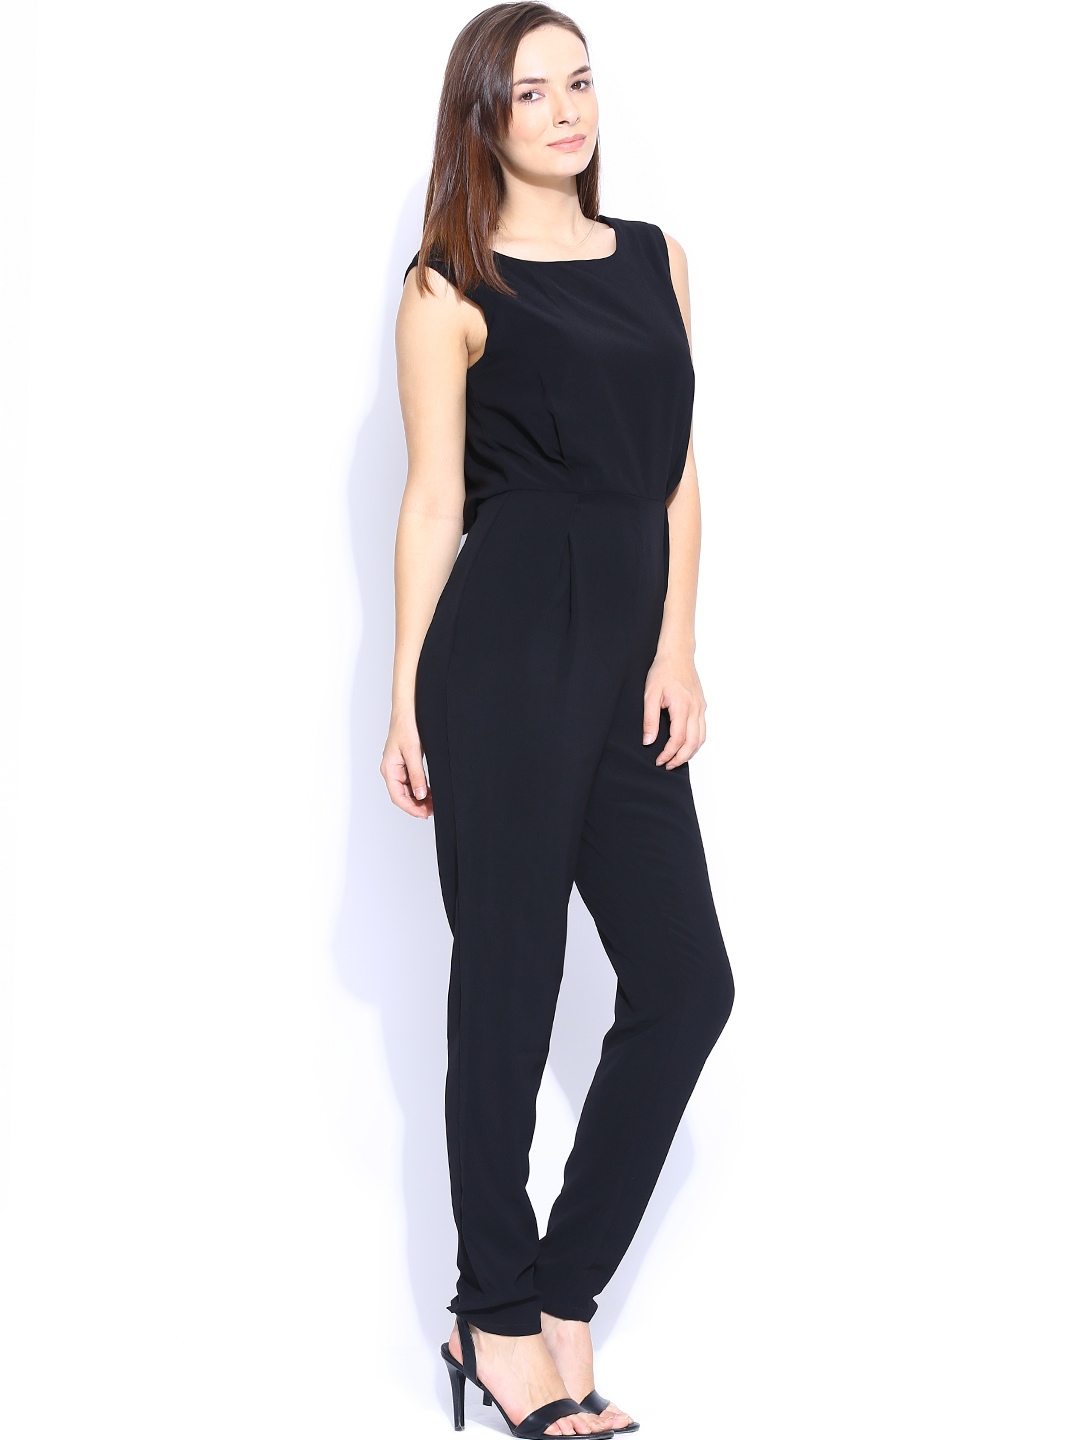 myntra vero moda black jumpsuit 822481 buy myntra vero moda jumpsuit at best price online all. Black Bedroom Furniture Sets. Home Design Ideas